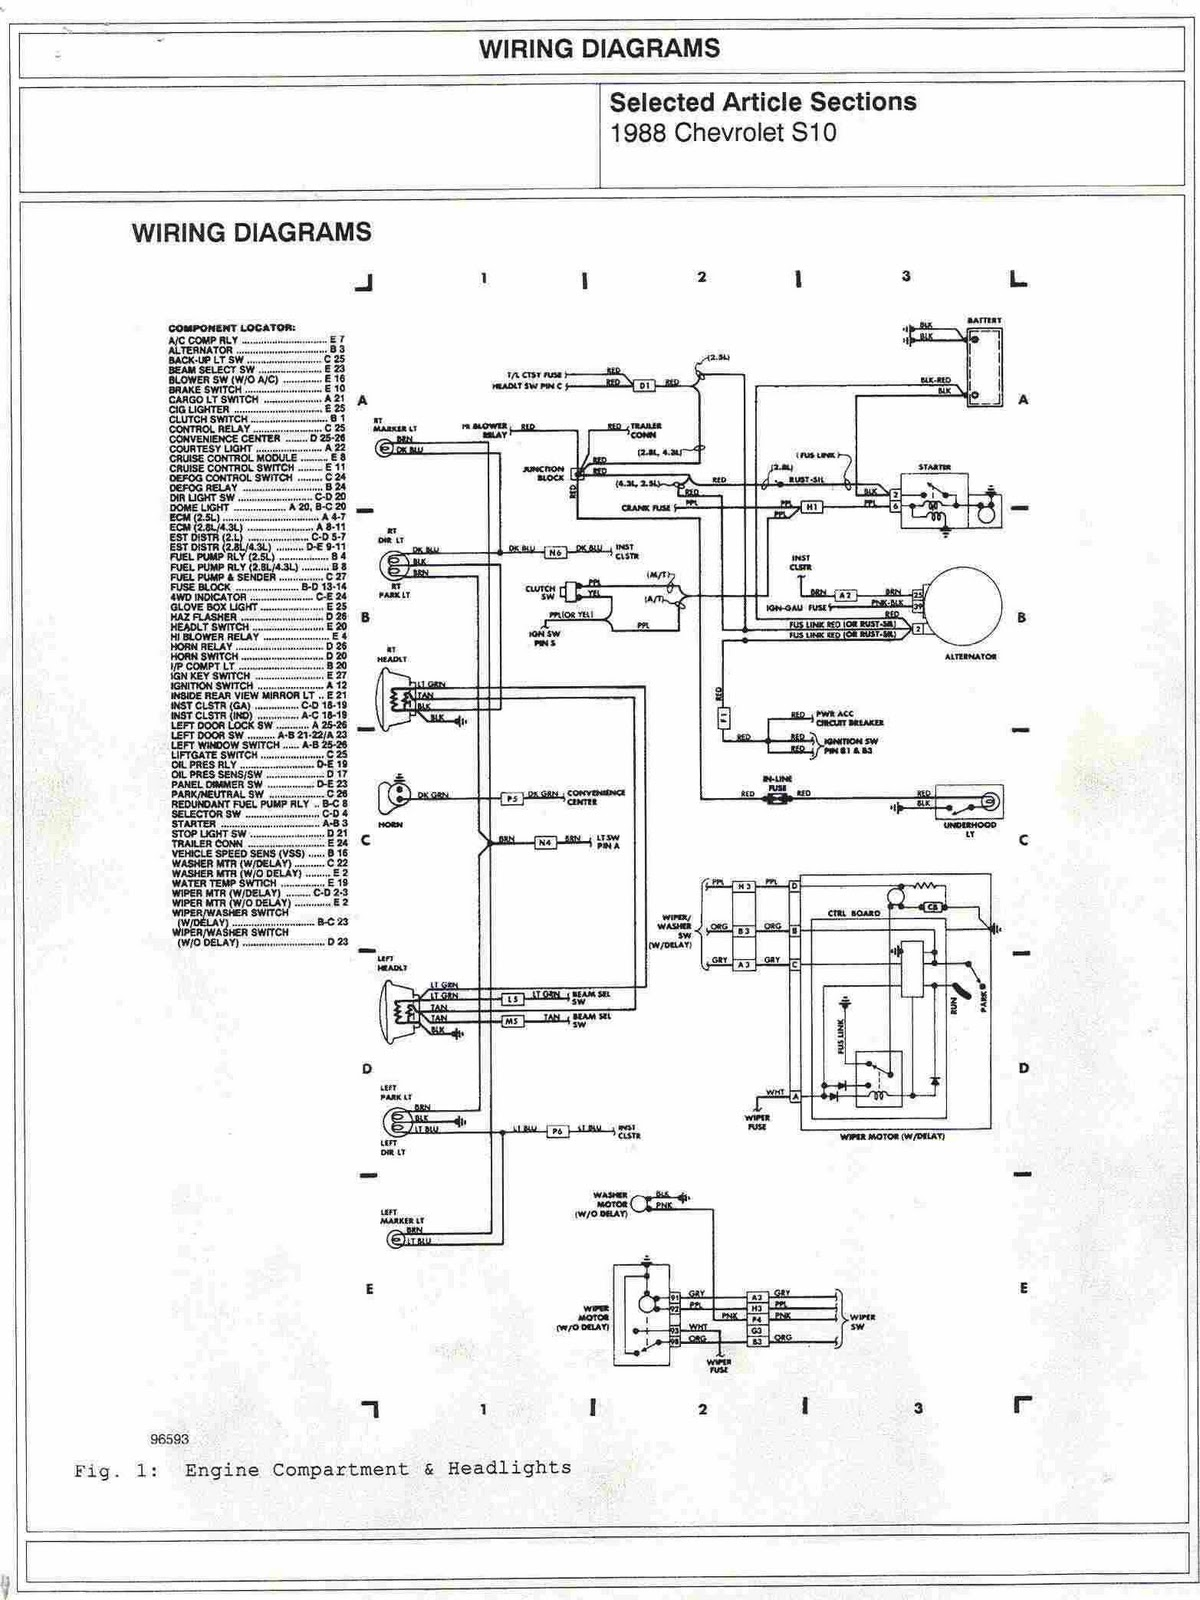 1988+Chevrolet+S10+Engine+Compartment+and+Headlights+Wiring+Diagrams 1 bp blogspot com bkgzqkamjzq tvmvttei1ci aaaaaaa chevy truck engine diagram at reclaimingppi.co